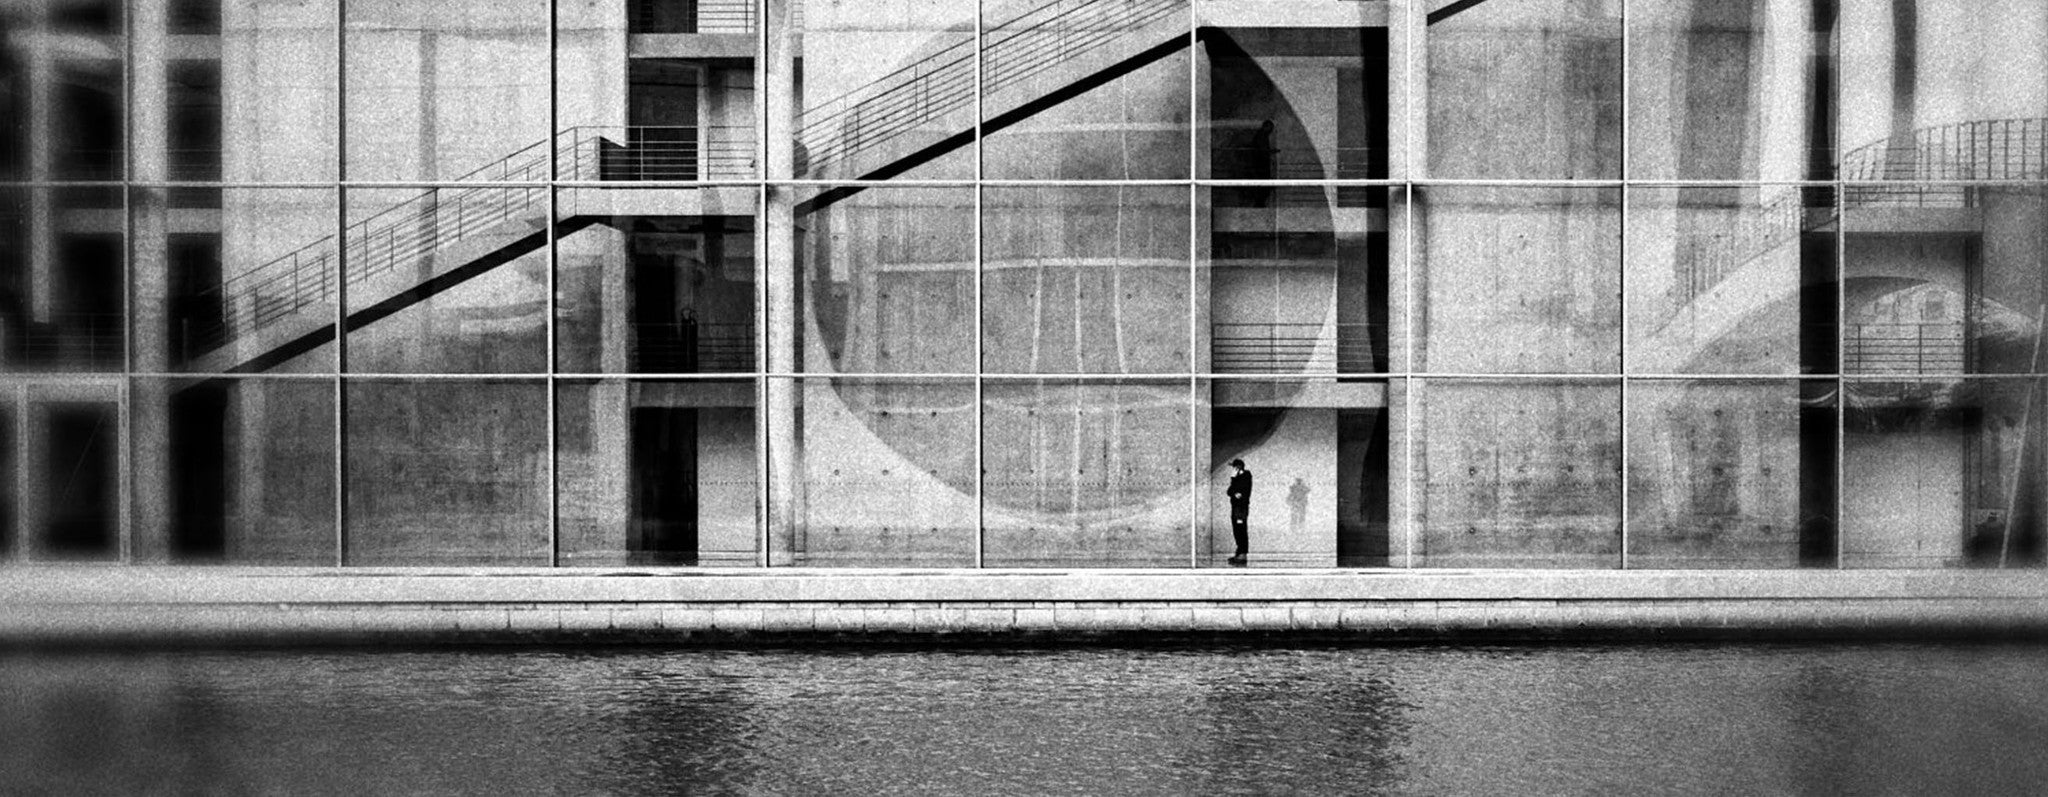 Academy the philosophy of street photography